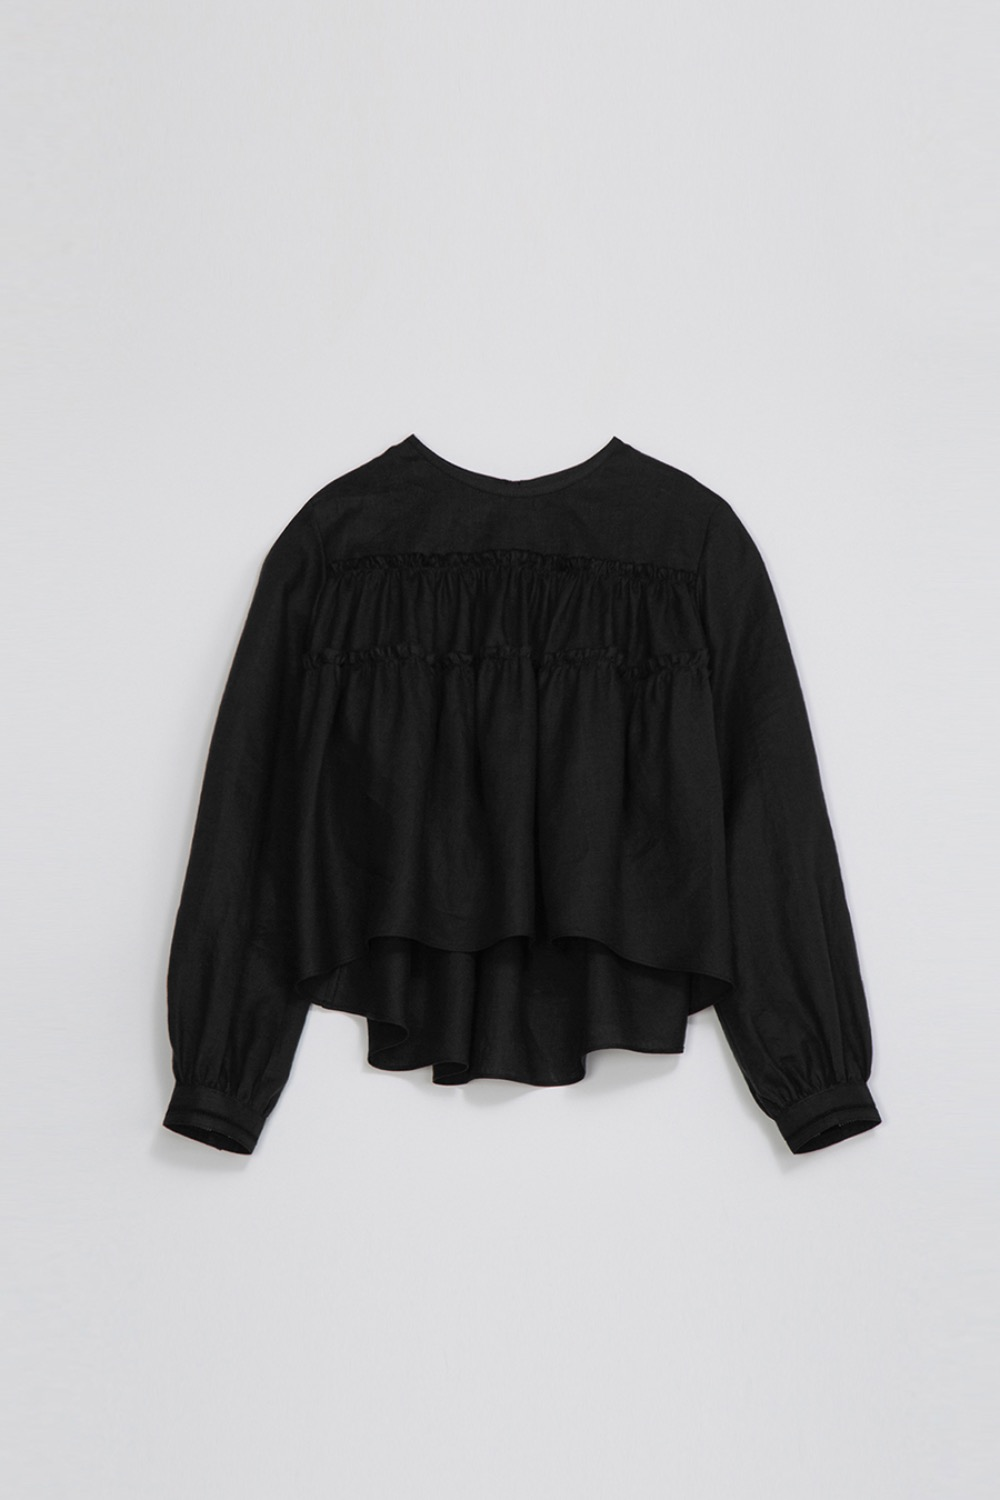 AGREABLE TIERD BLOUSE -BLACK LINEN